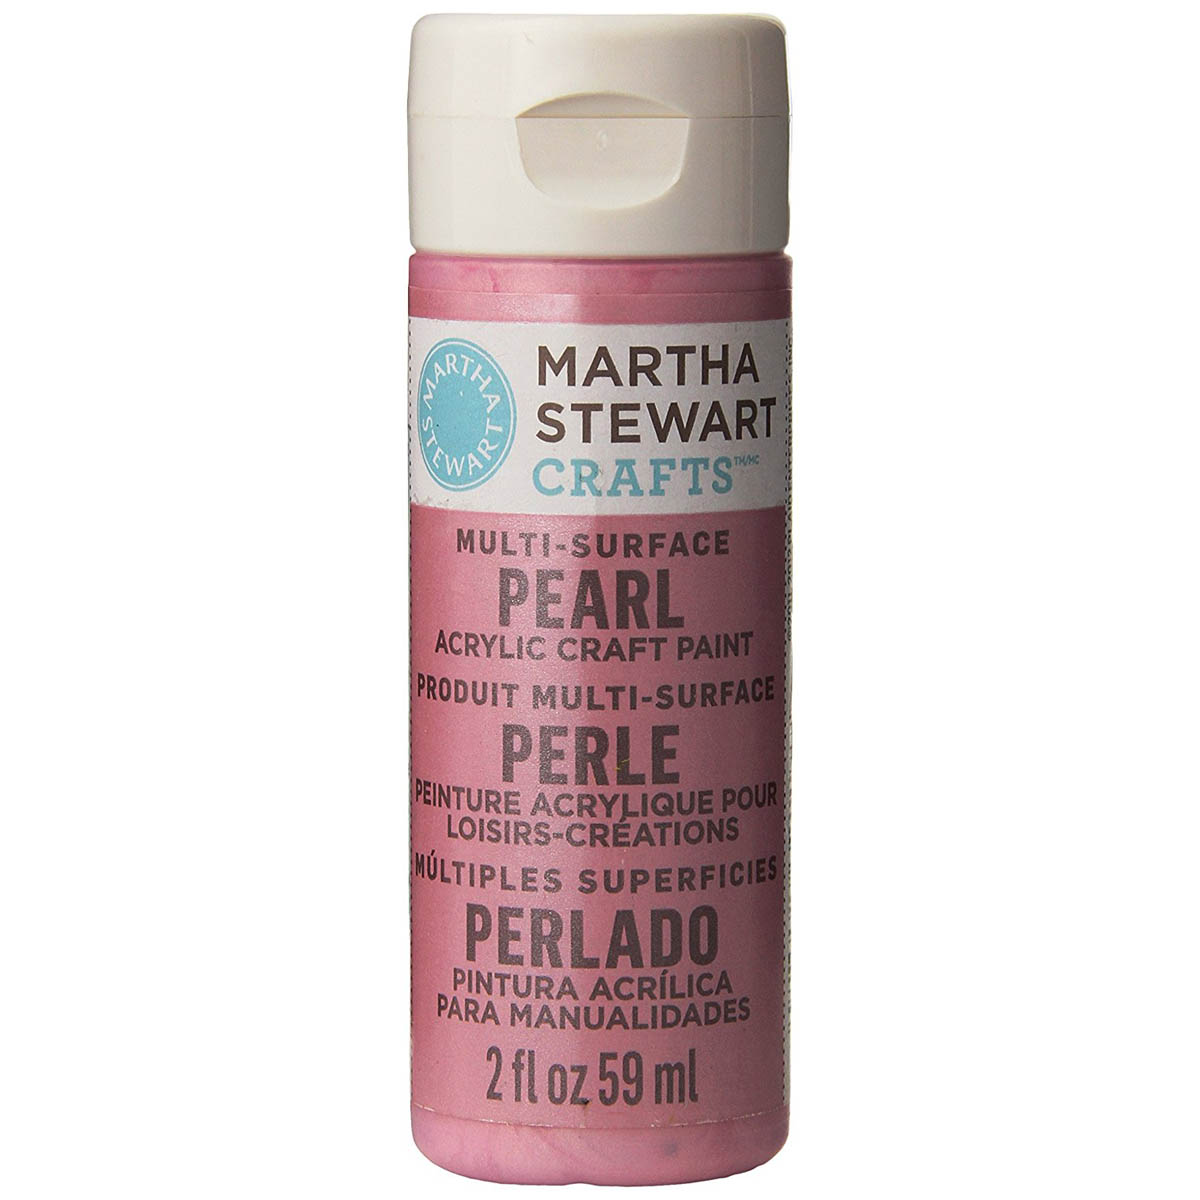 Martha Stewart ® Multi-Surface Pearl Acrylic Craft Paint - Pink Taffeta, 2 oz. - 32117CA